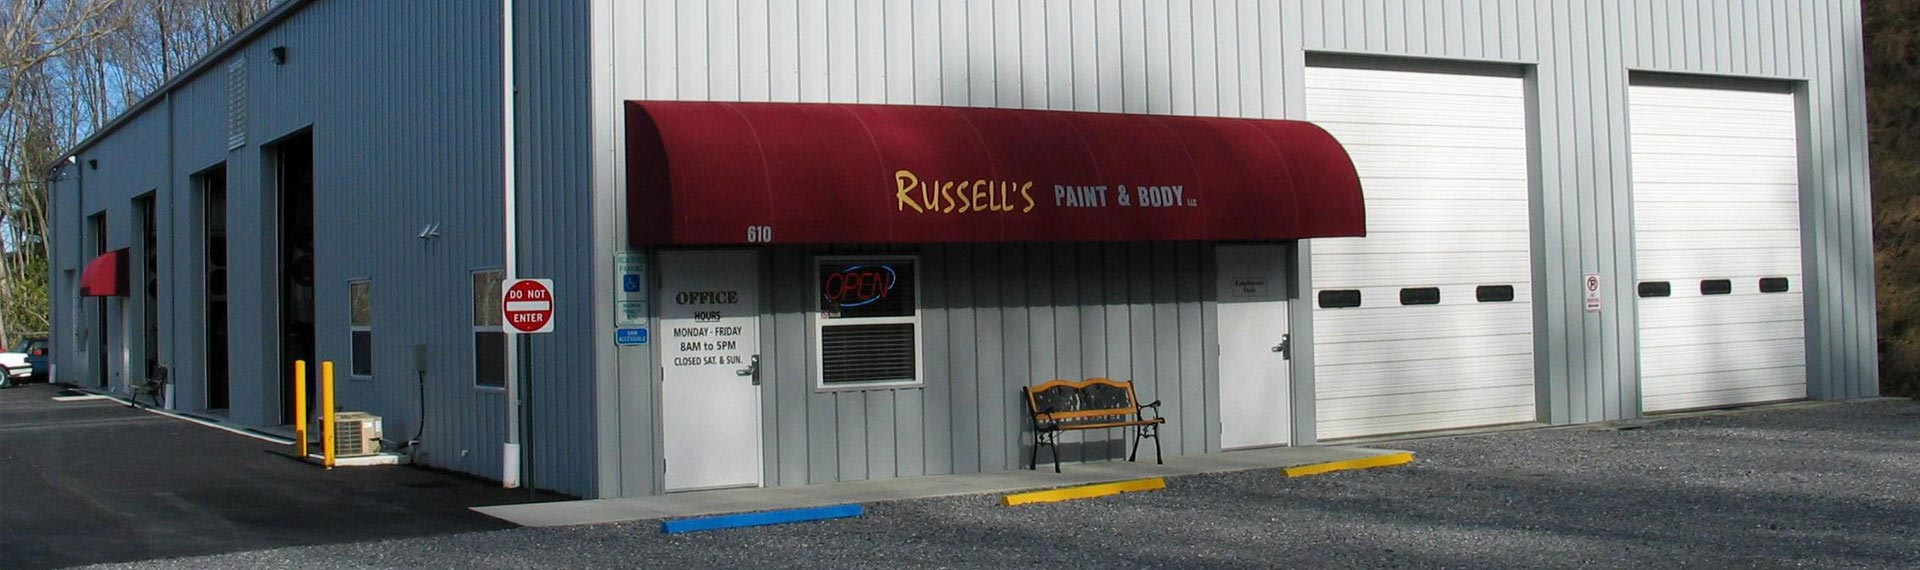 Russell's Paint & Body, LLC Slider Banner 2